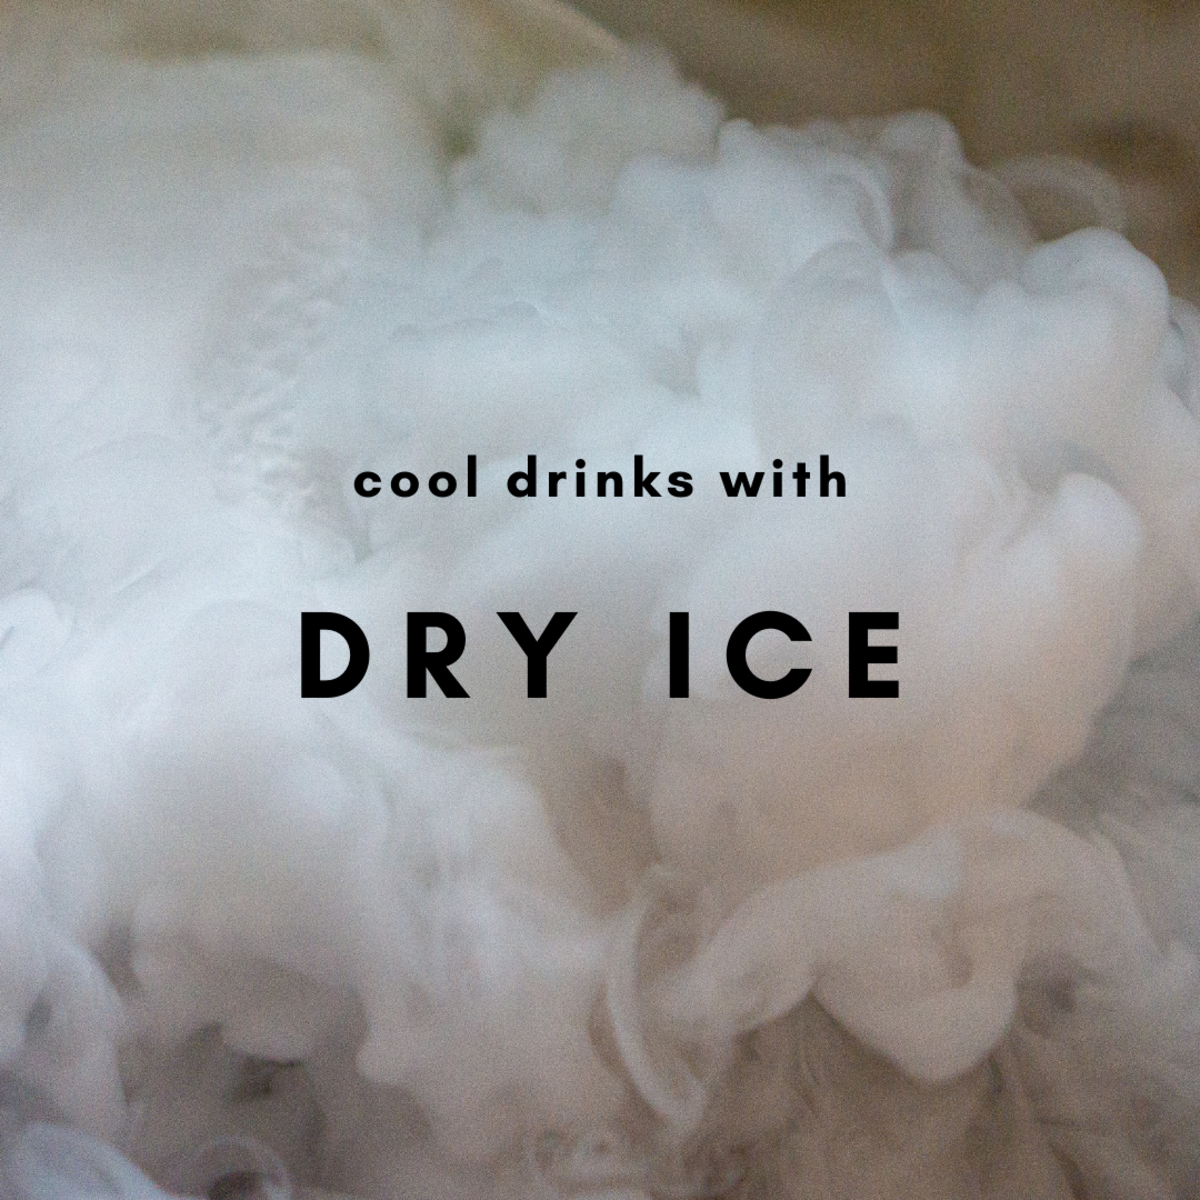 Making Drinks With Dry Ice: Recipes and Ideas